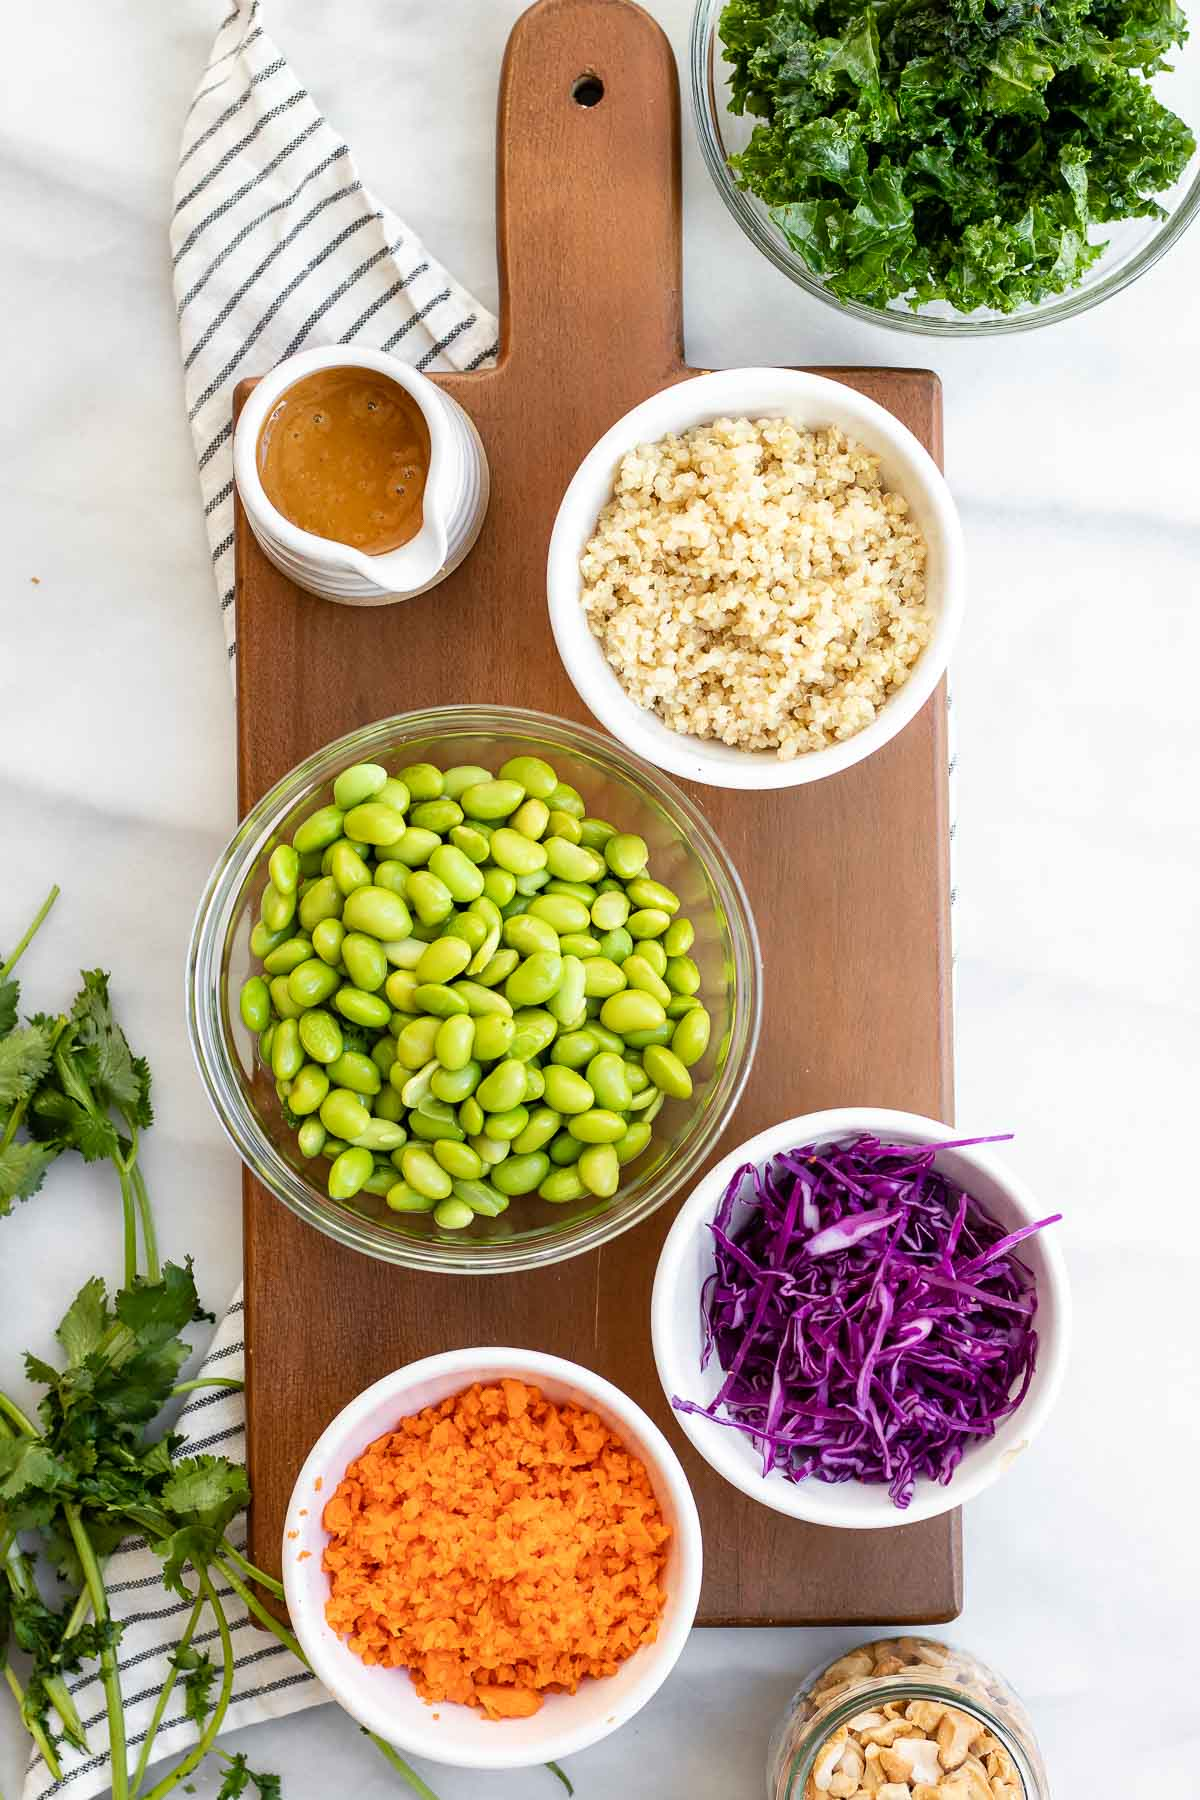 Ingredients for the salad on a wood board.